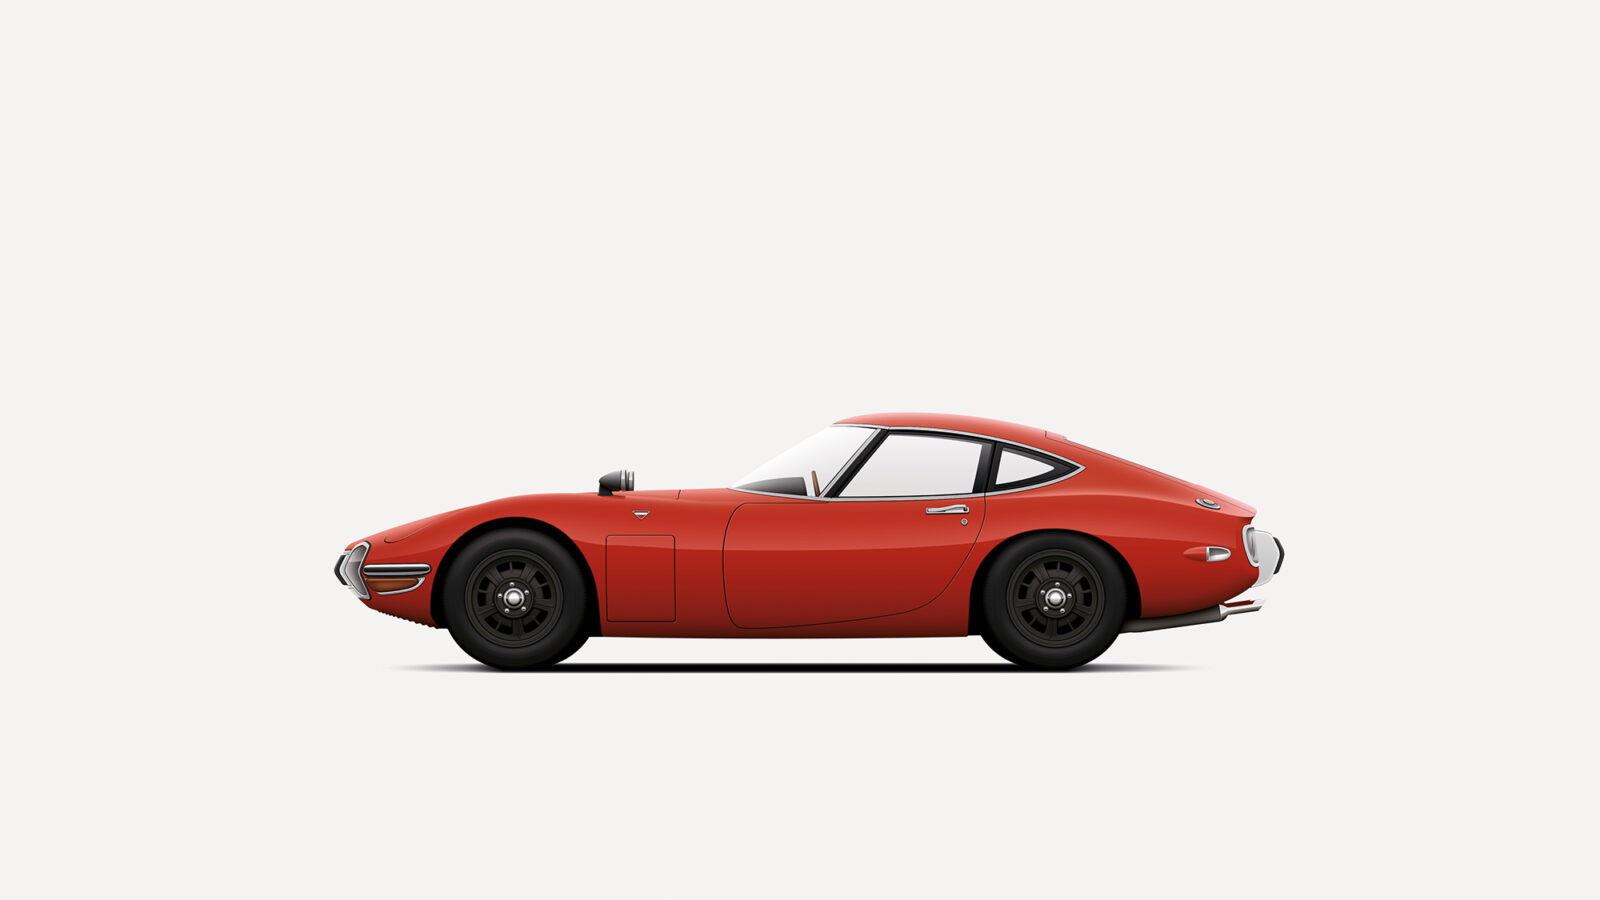 2000GT illustration 1600x900 - The Originals by Petrolified